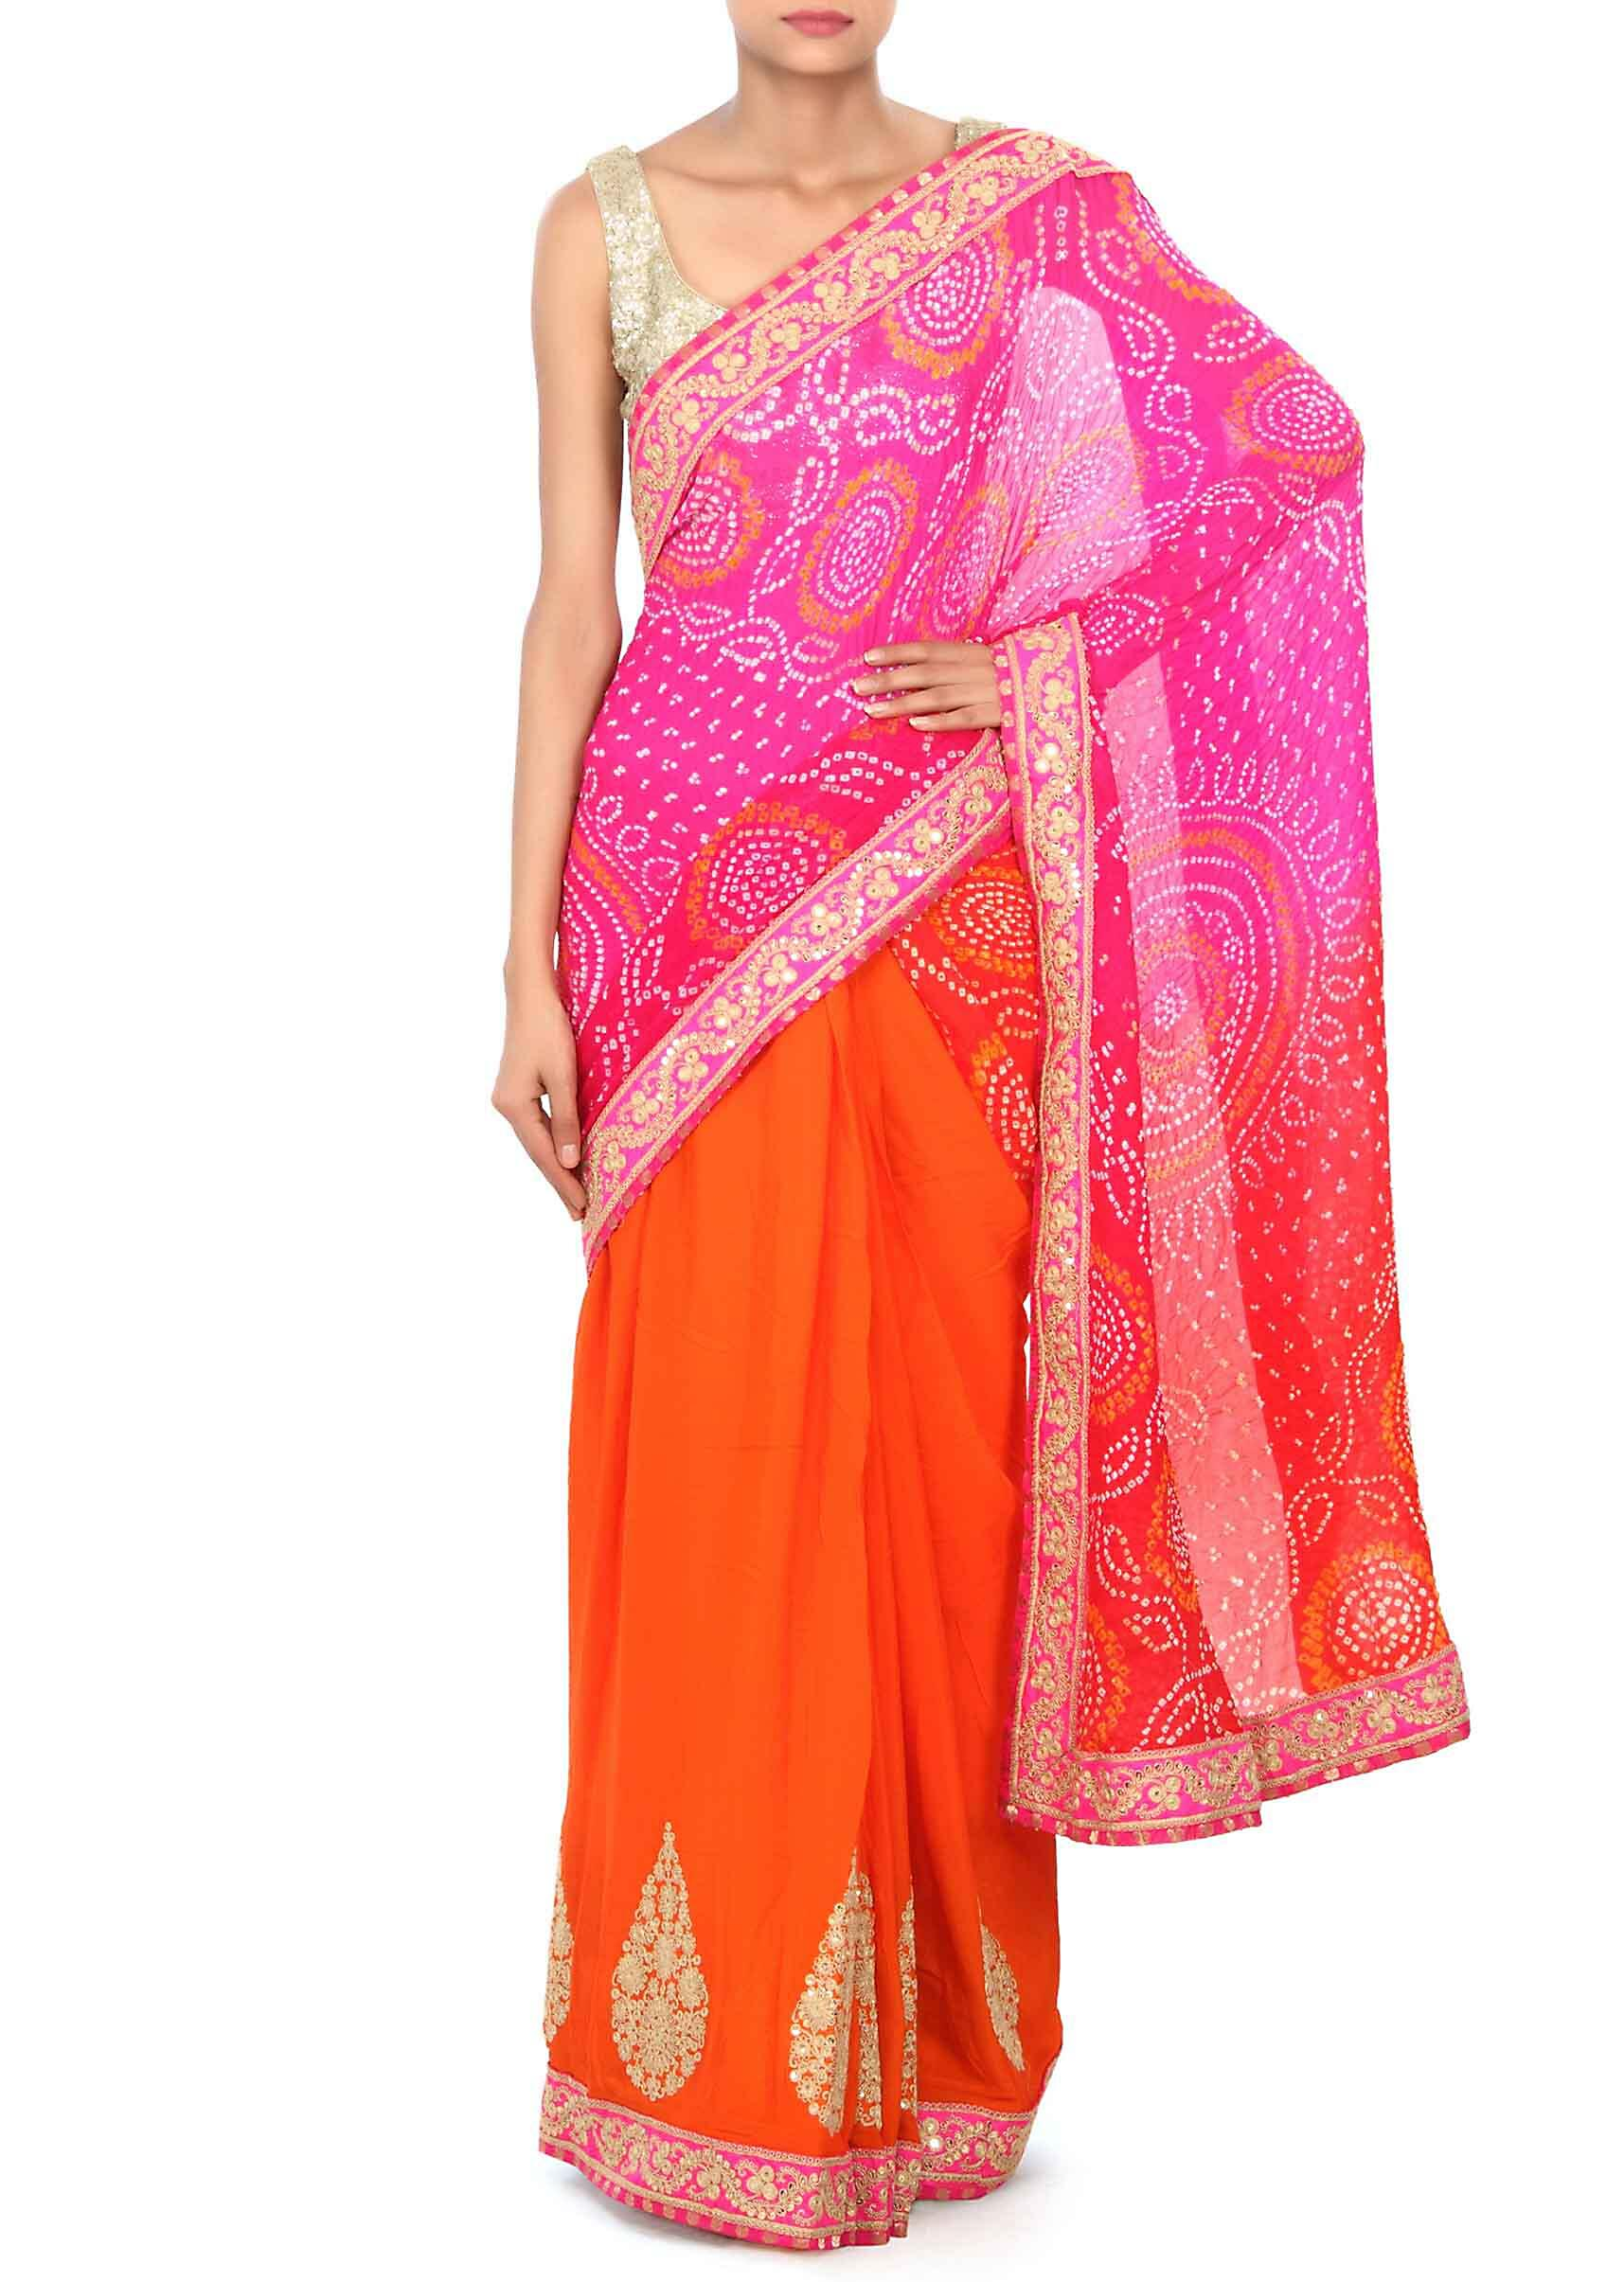 5aa26d2fcd123 Half and half bandhani saree in pink and orange with zari and sequin embroidery  only on KalkiMore Detail